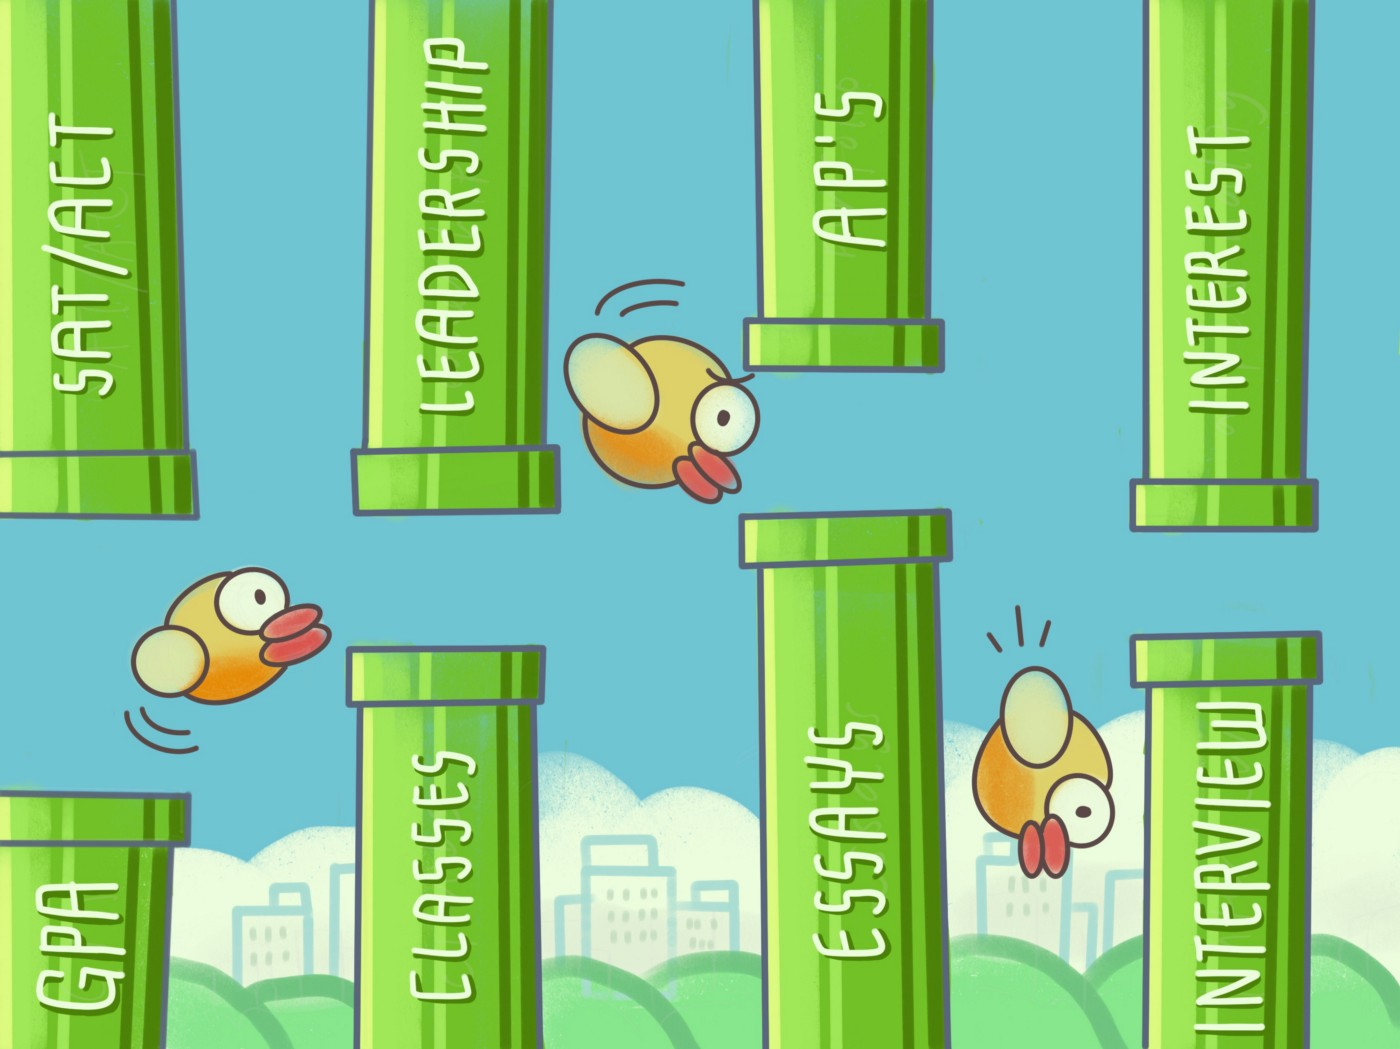 flappy bird trying to get over obstacles to get into college